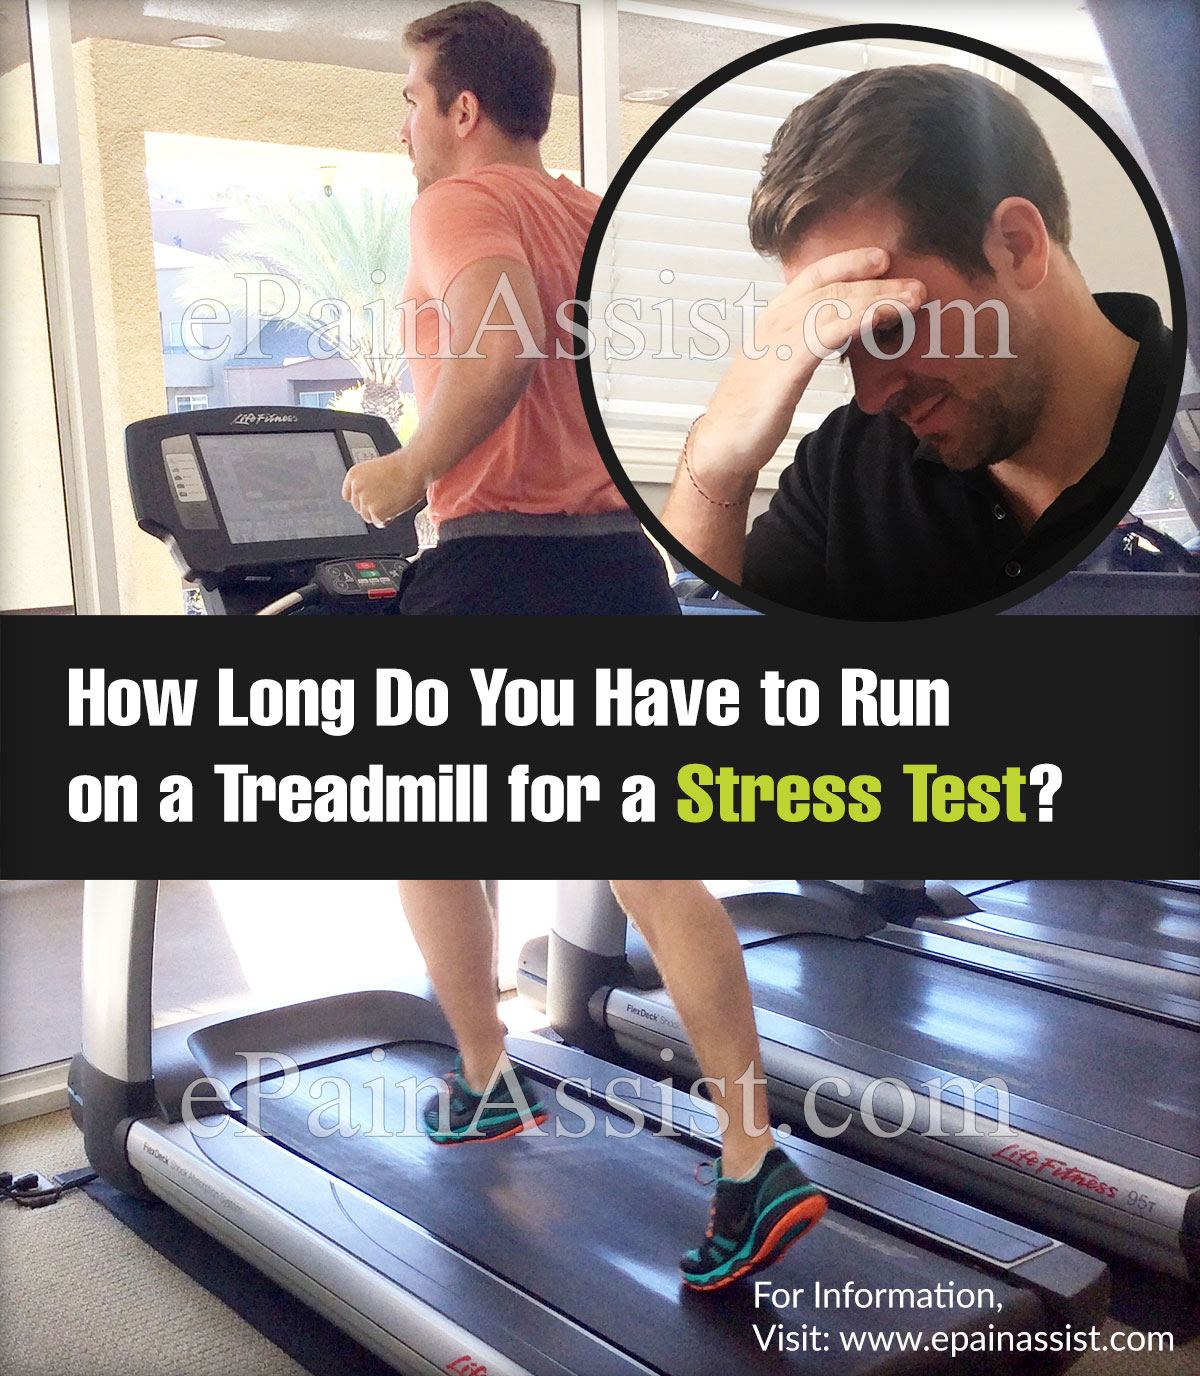 How Long Do You Have to Run on a Treadmill for a Stress Test?